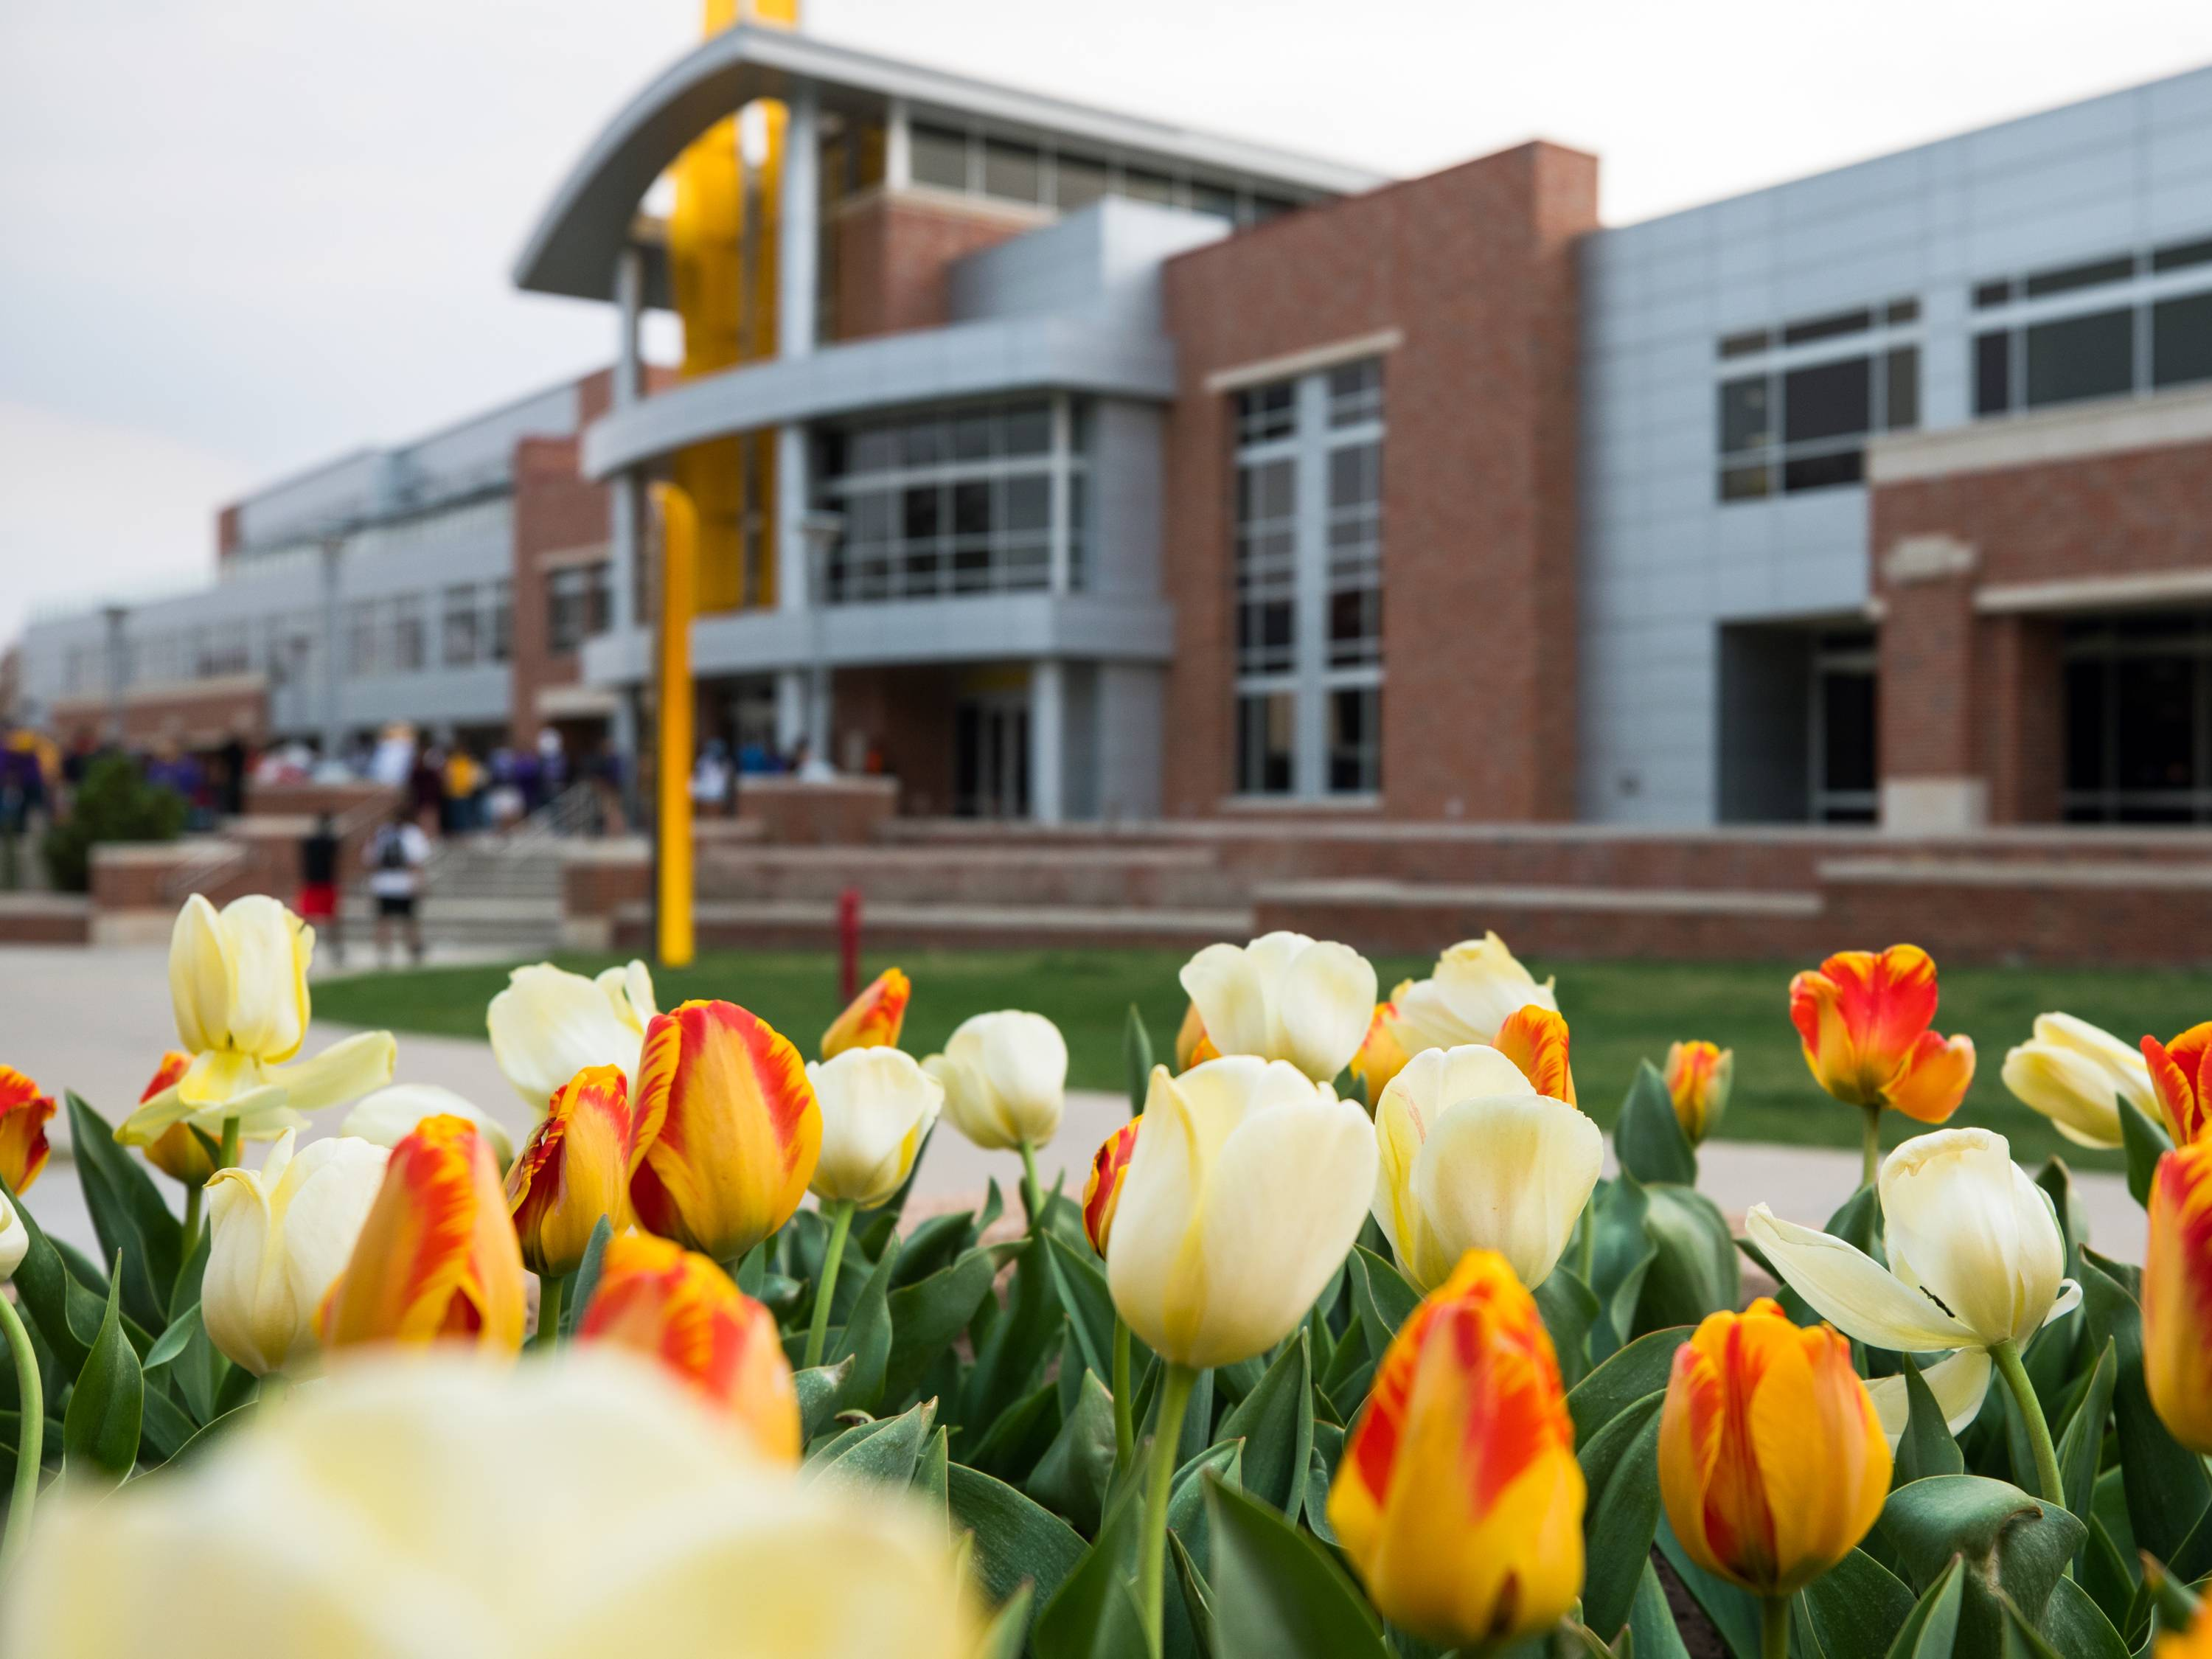 Tulips grow at the east entrance of the Rhatigan Student Center